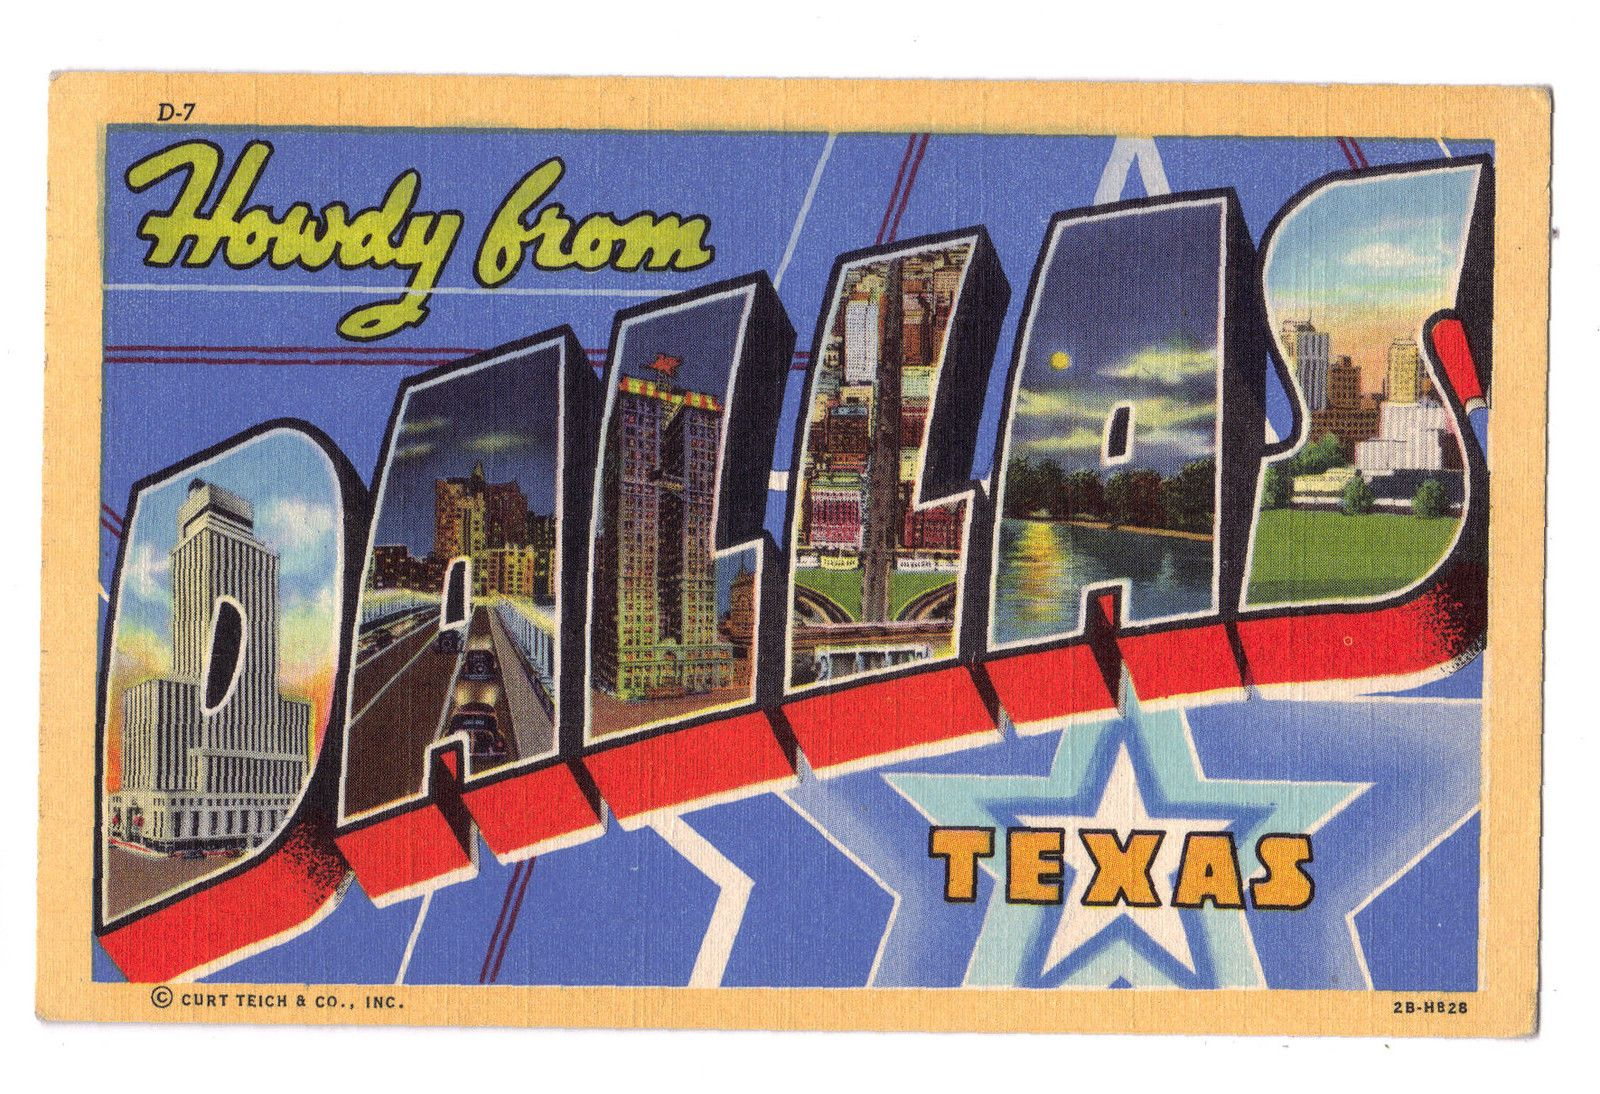 Large letter postcard greetings from dallas texas postcard ebay large letter postcard greetings from dallas texas postcard ebay m4hsunfo